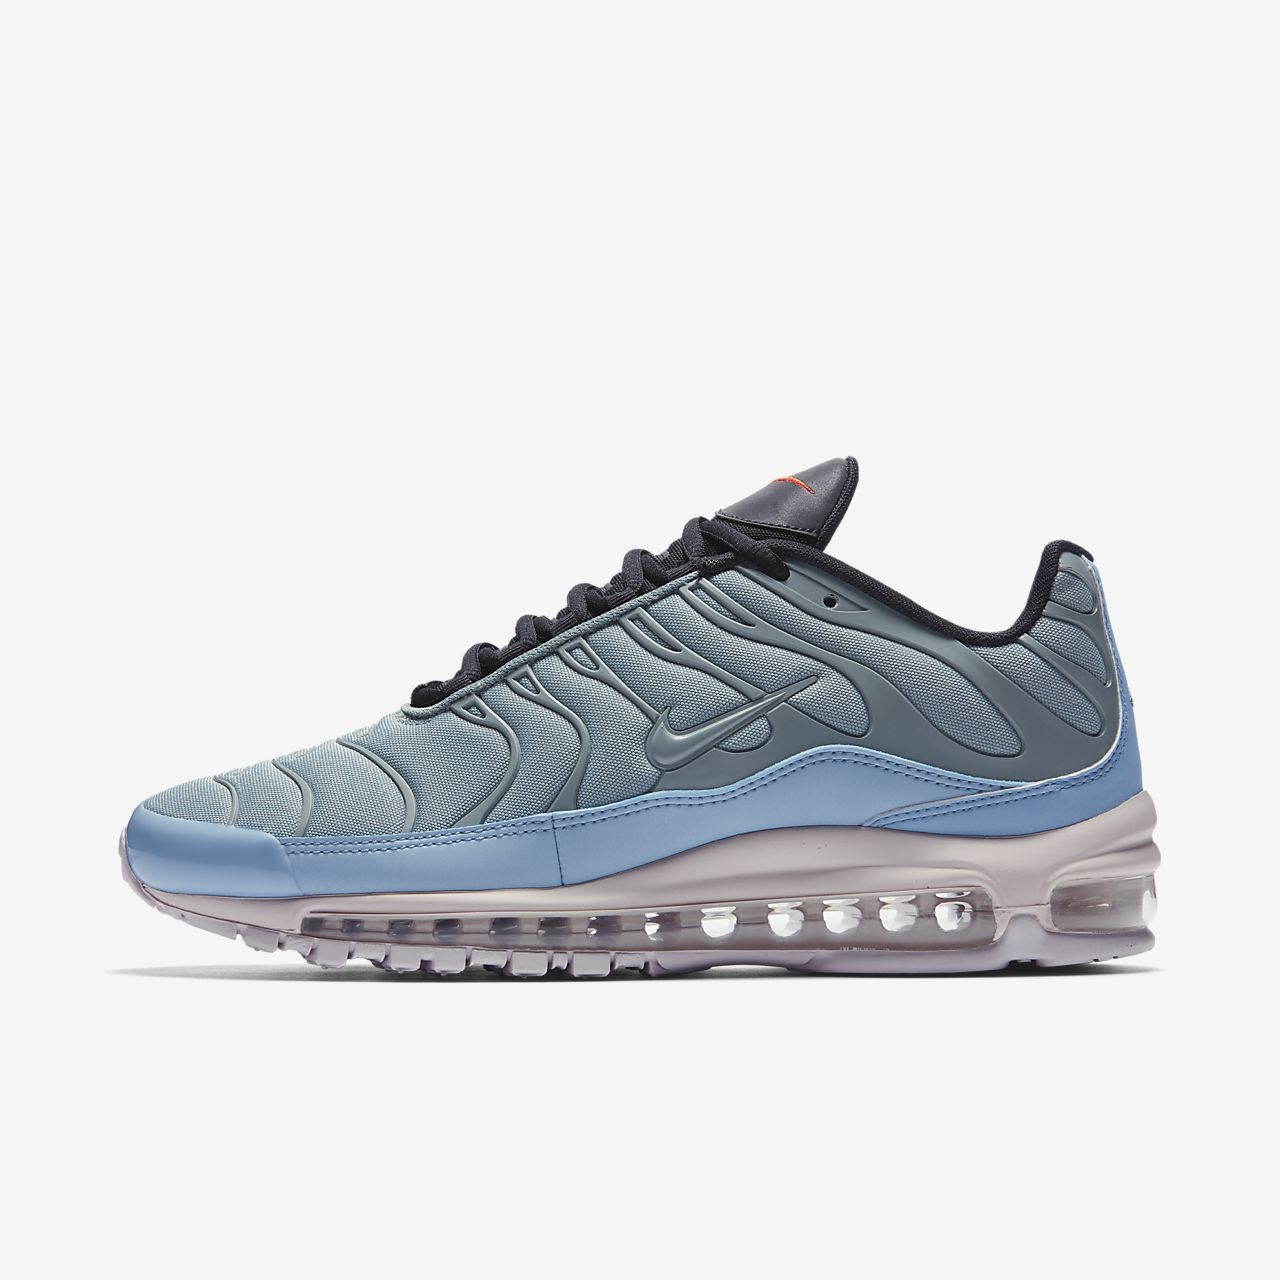 1ecb1f35177c7a Nike Air Max 97 Plus Men s Shoe. Nike.com NZ